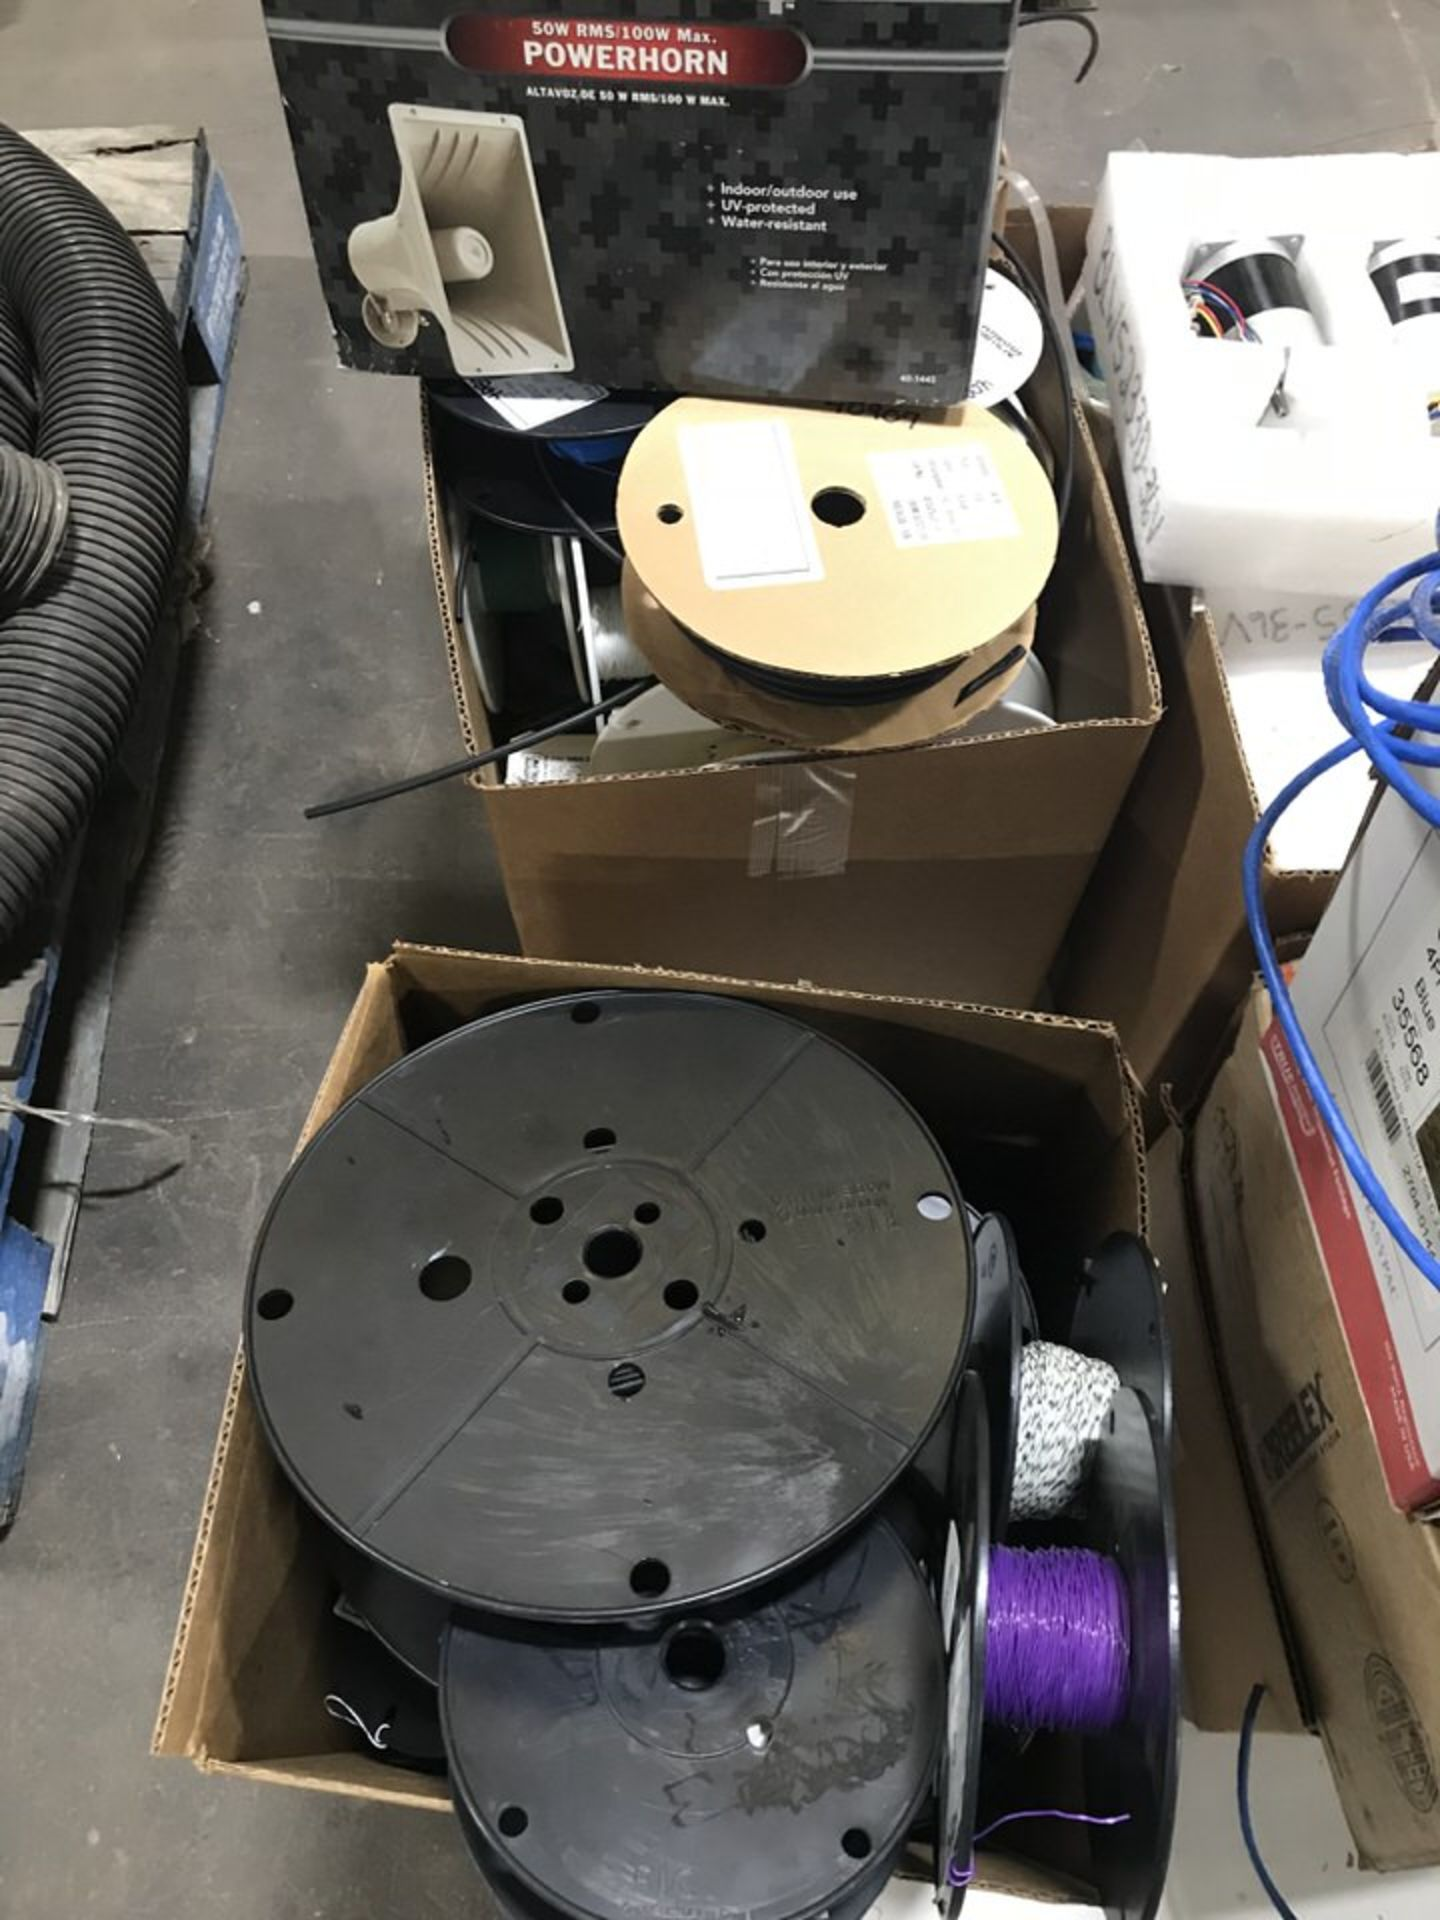 Lot 135A - Electronic Equipment, Cabeling, Inductors, Misc Electronic Componenets (LOCATION: 3421 N SYLVANIA,